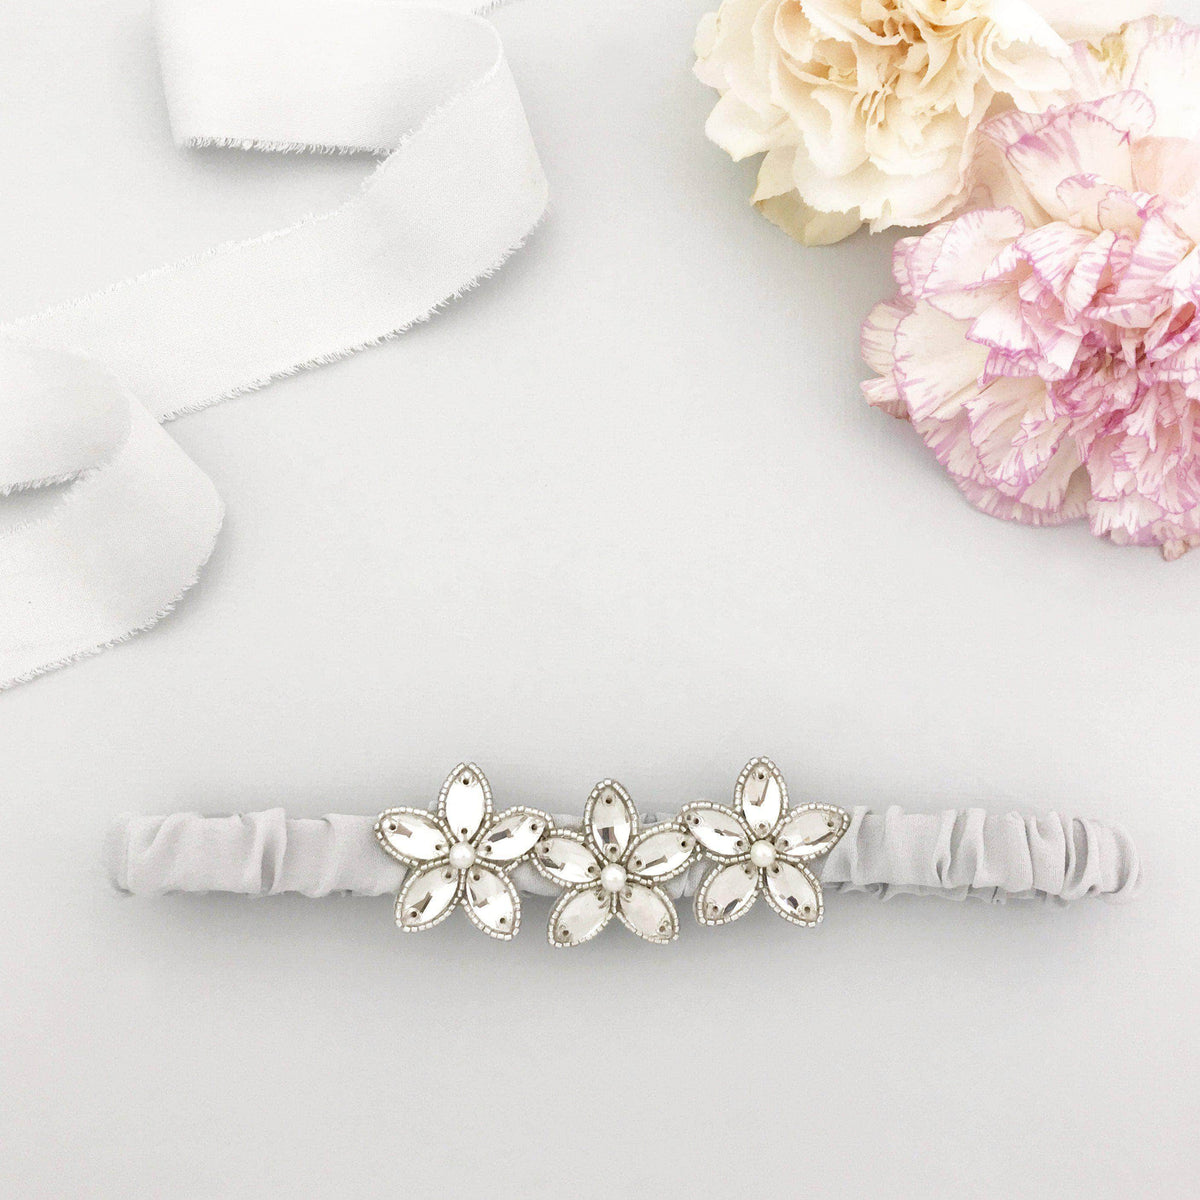 Wedding Garter Pale blue / Extra small 35-40cm (13.5-16 inch) Embellished silk wedding garter (various colours) - 'Joi'